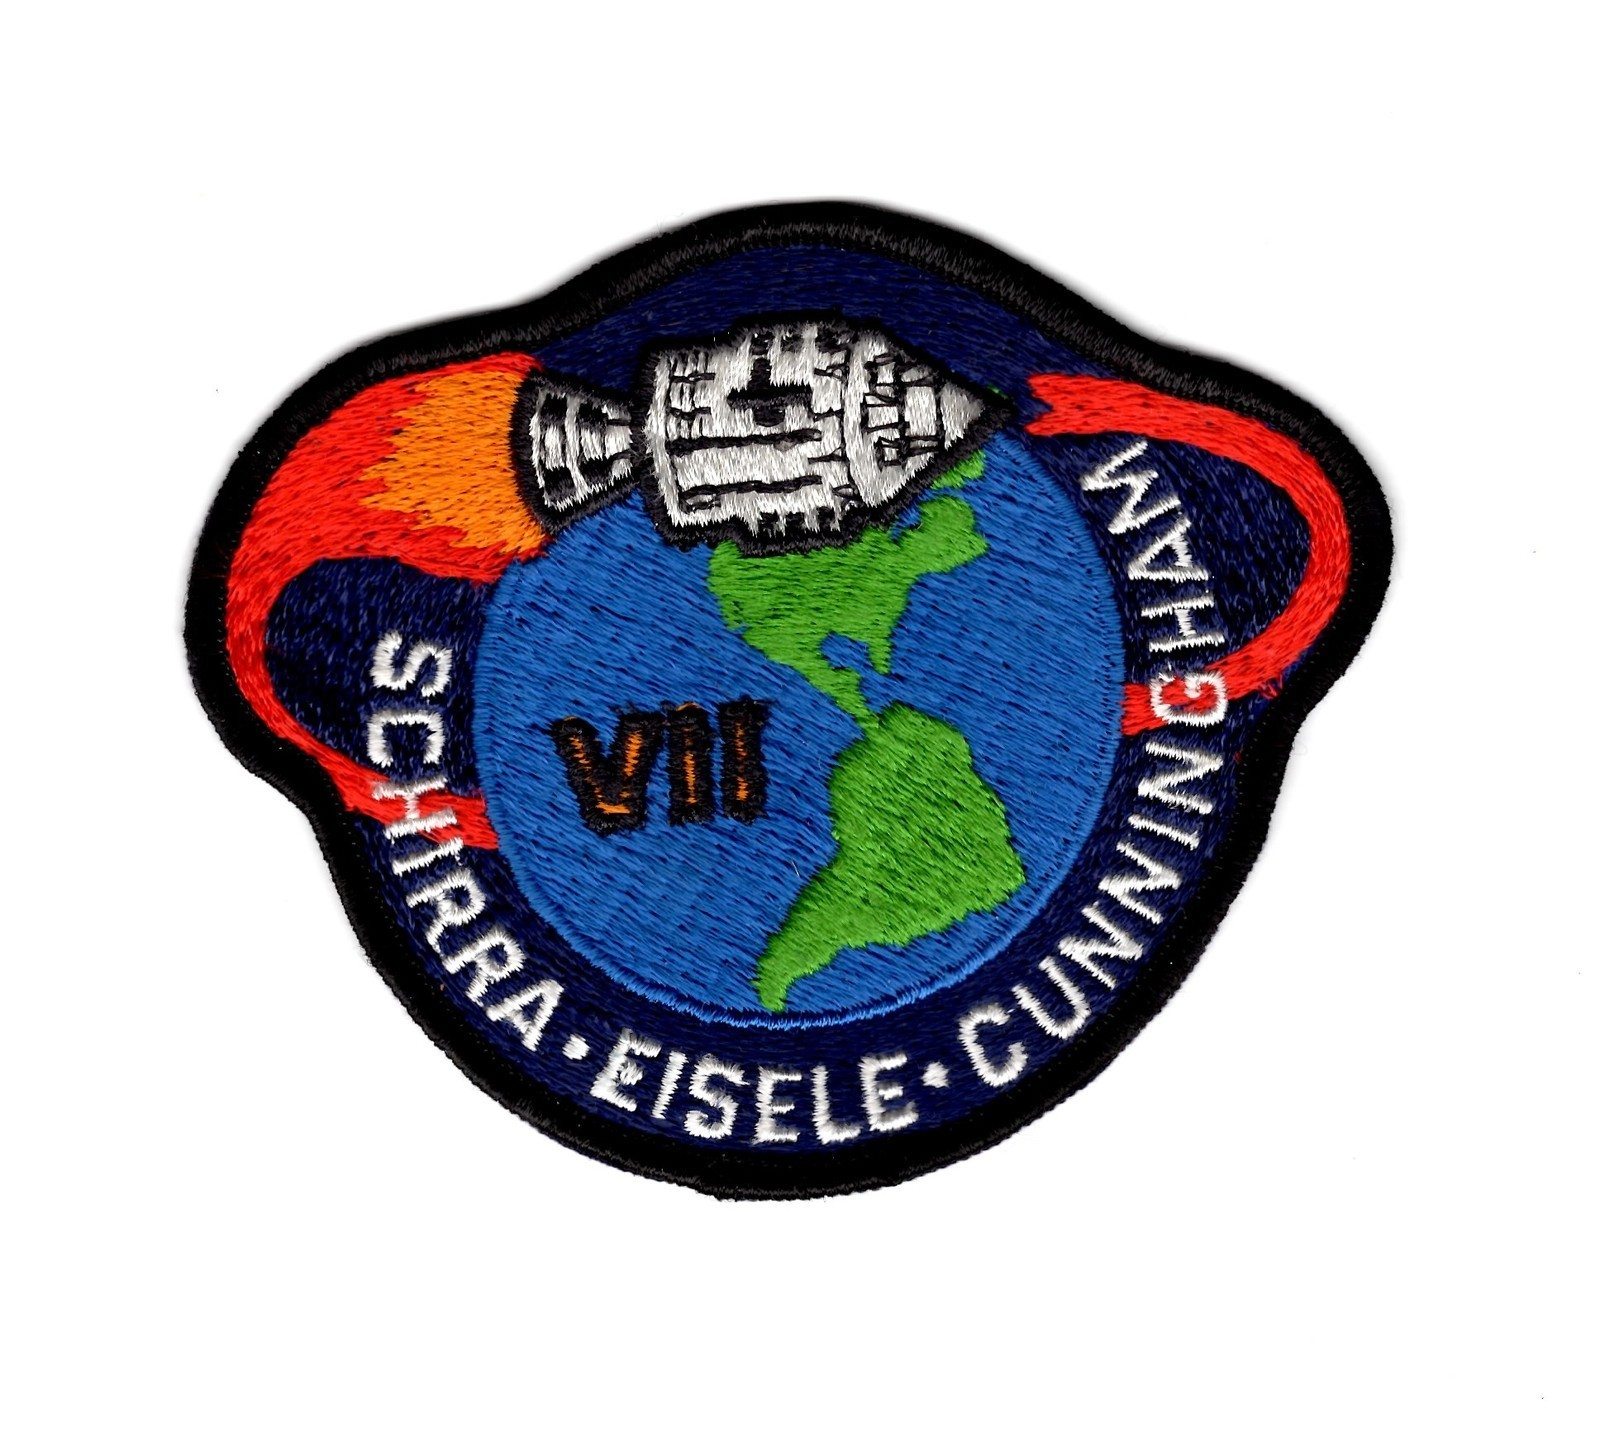 NASA APOLLO 7 APOLLO VII MISSION PATCH SCHIRRA EISELE ...